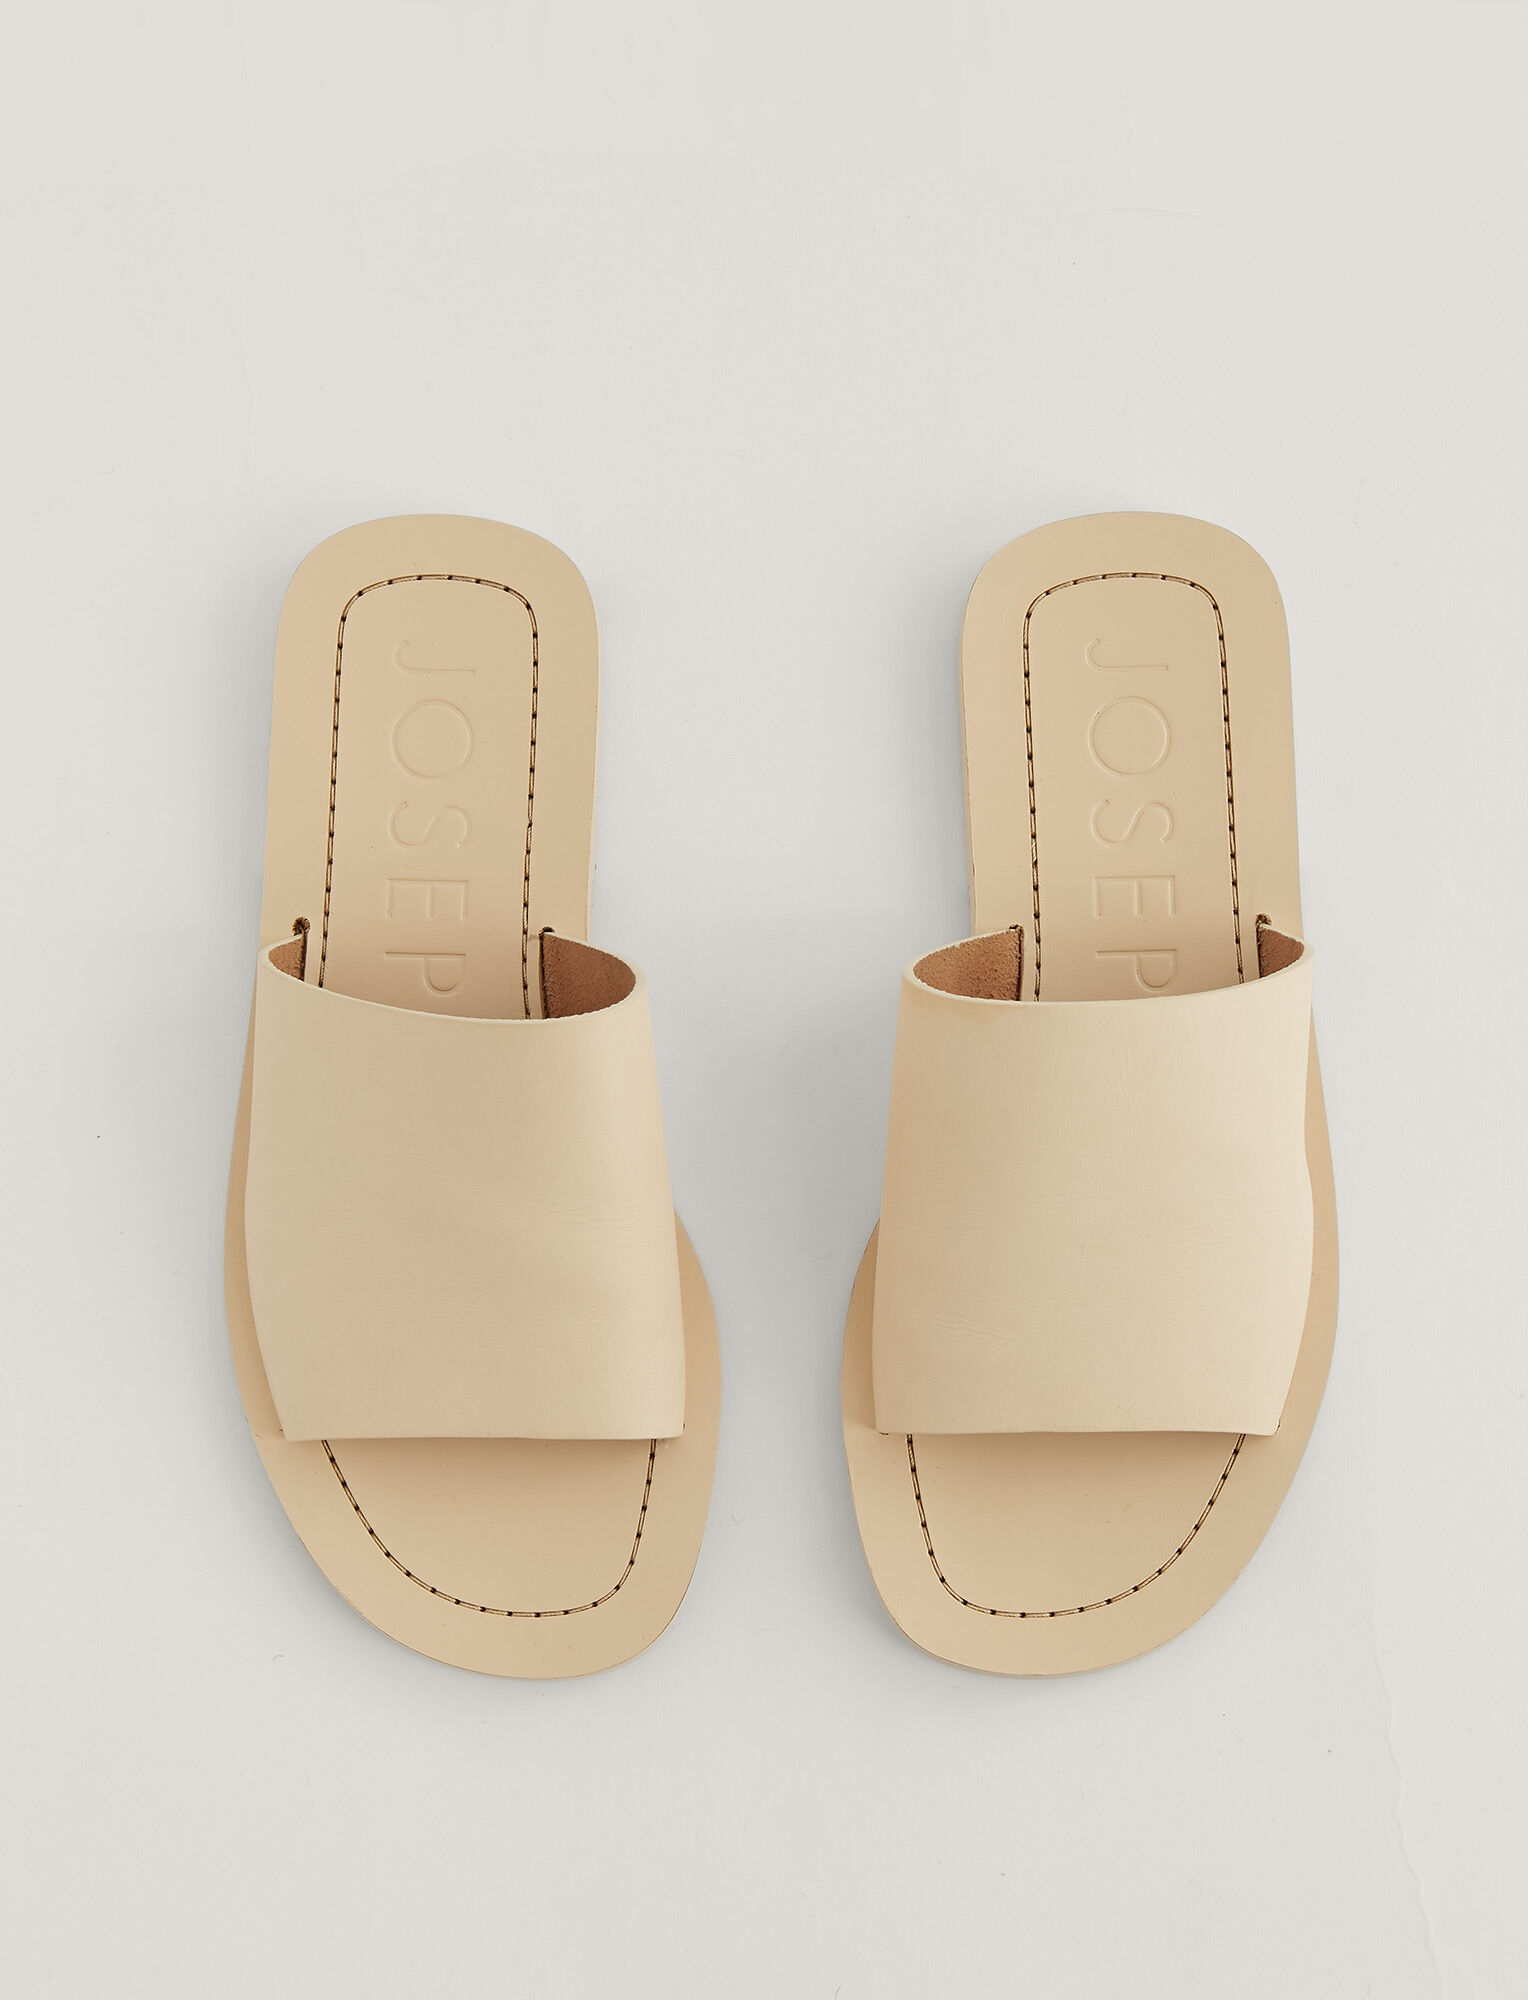 Joseph, Jannah Leather Sandal, in OFF WHITE